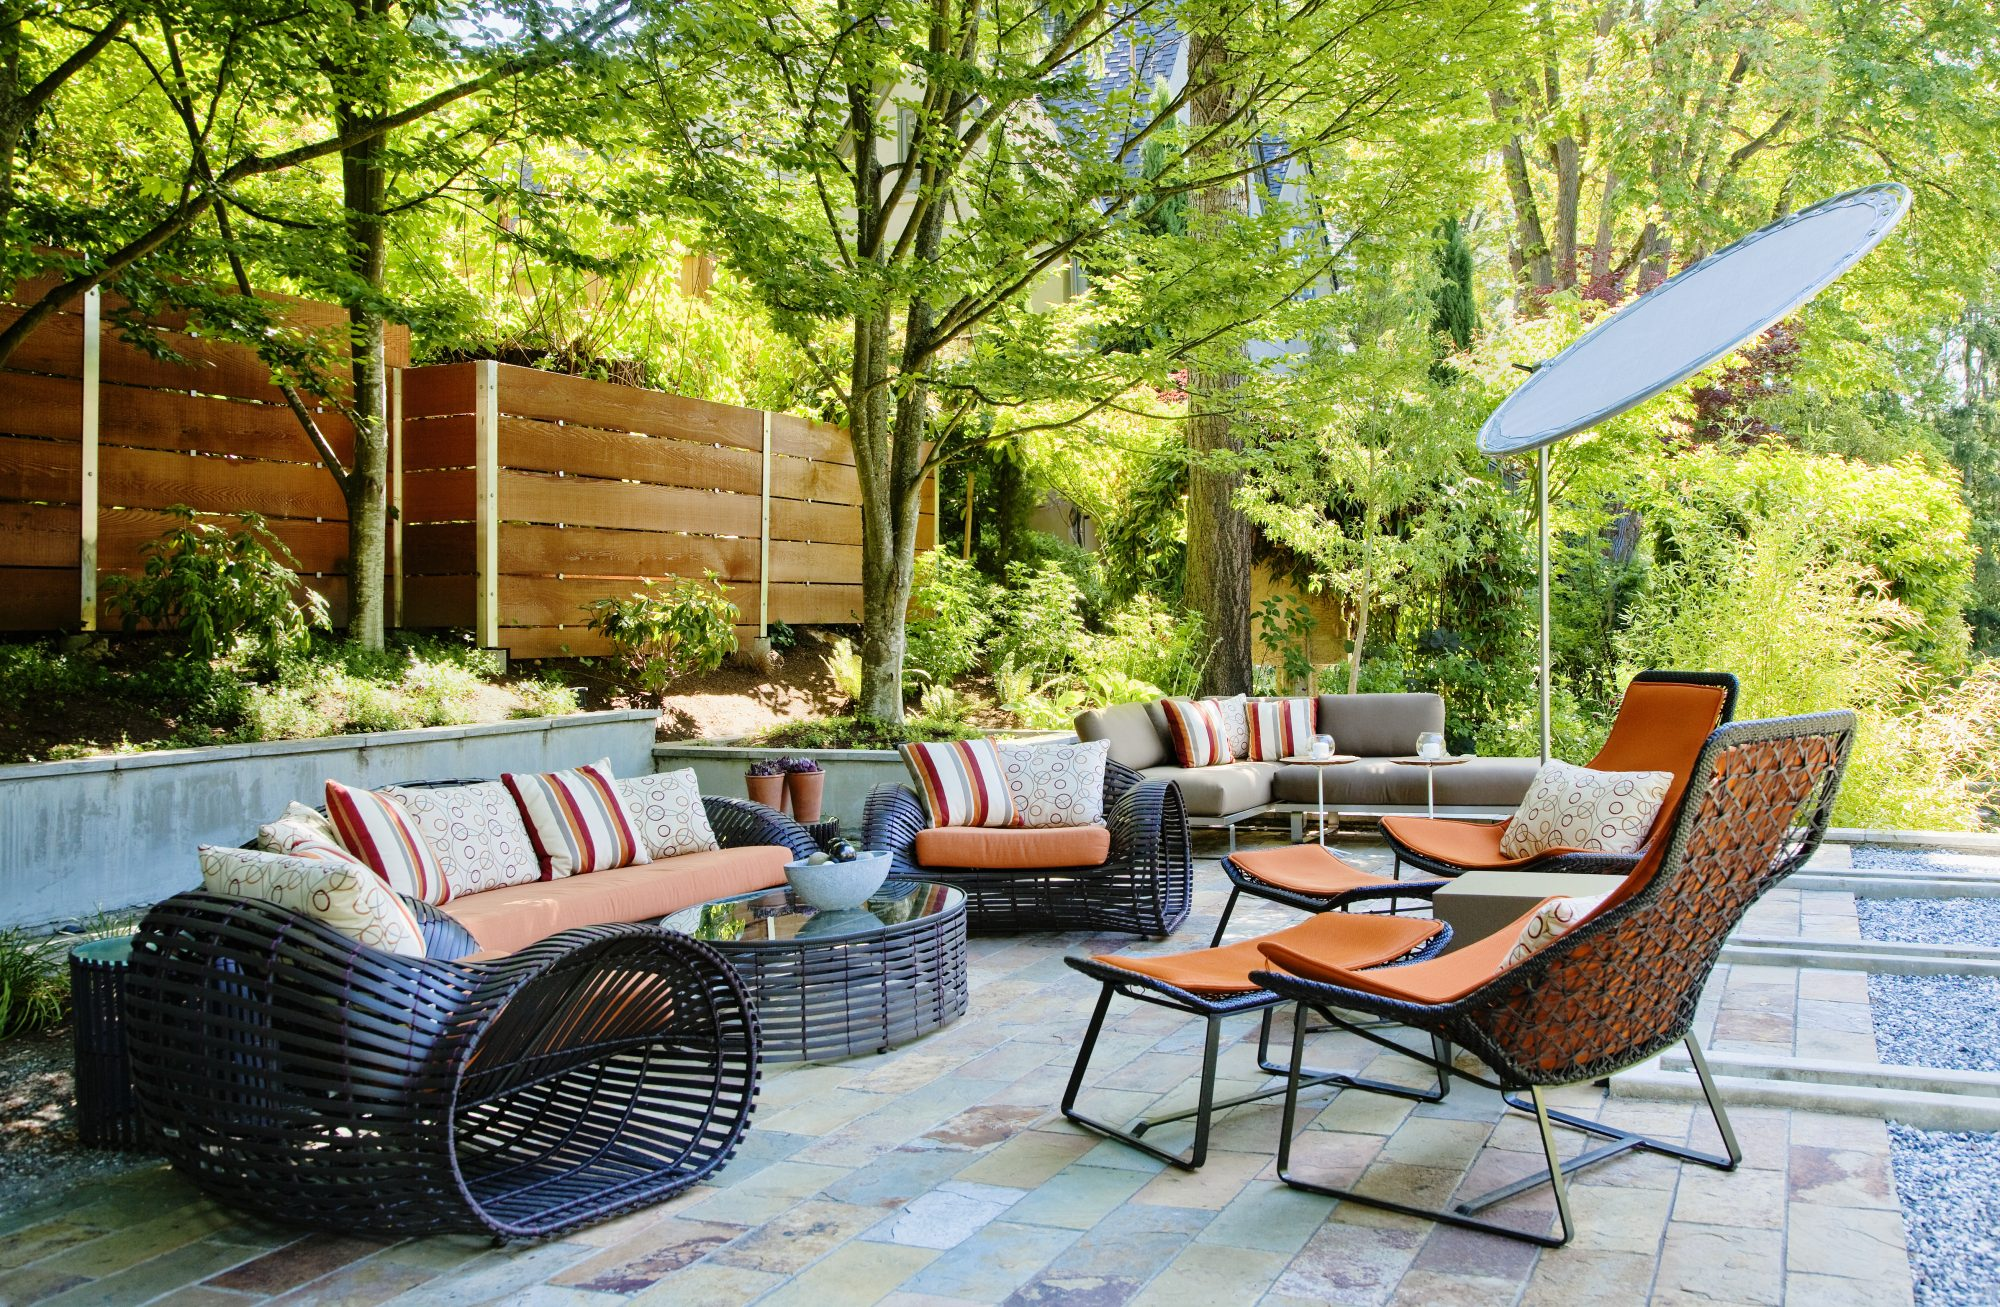 outdoor patio furniture by pool